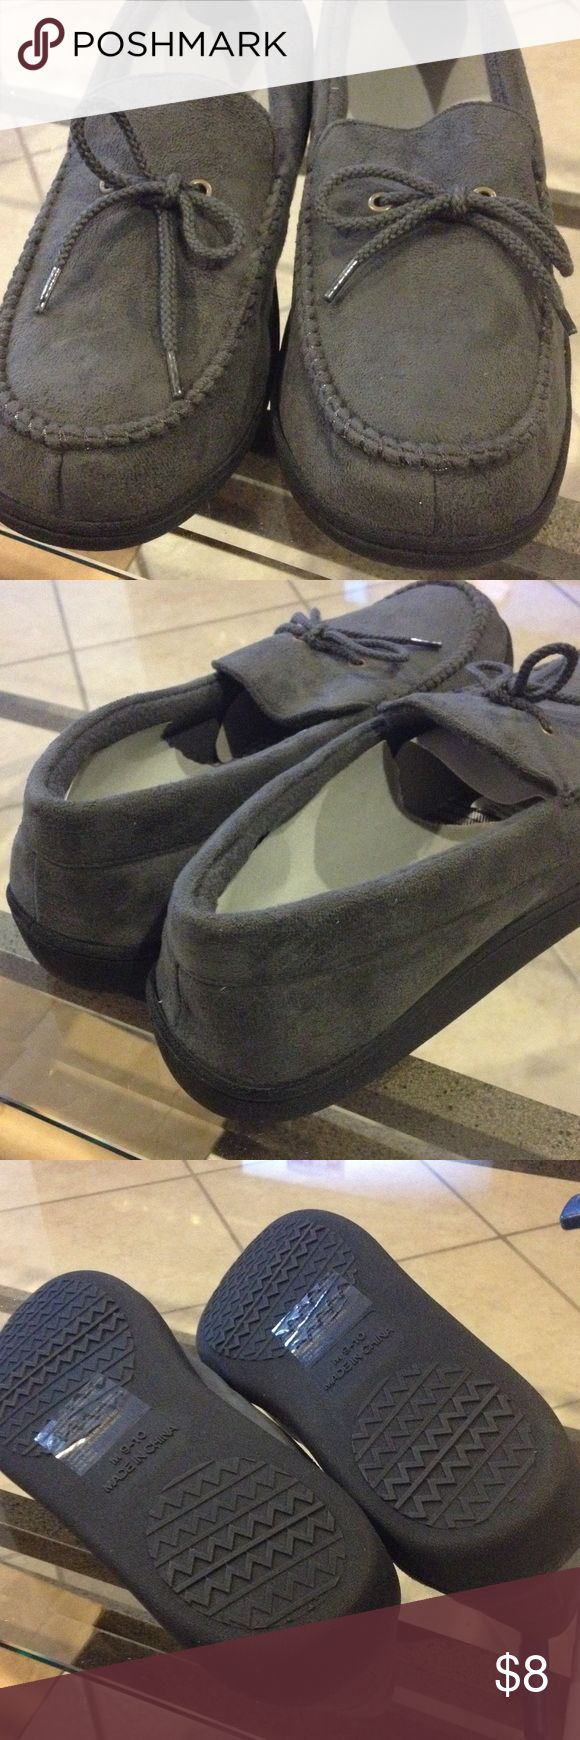 Medium (9-10) men's moccasin slipper NWT Mens medium (9-10) sporty moccasin slipper new with tags Shoes